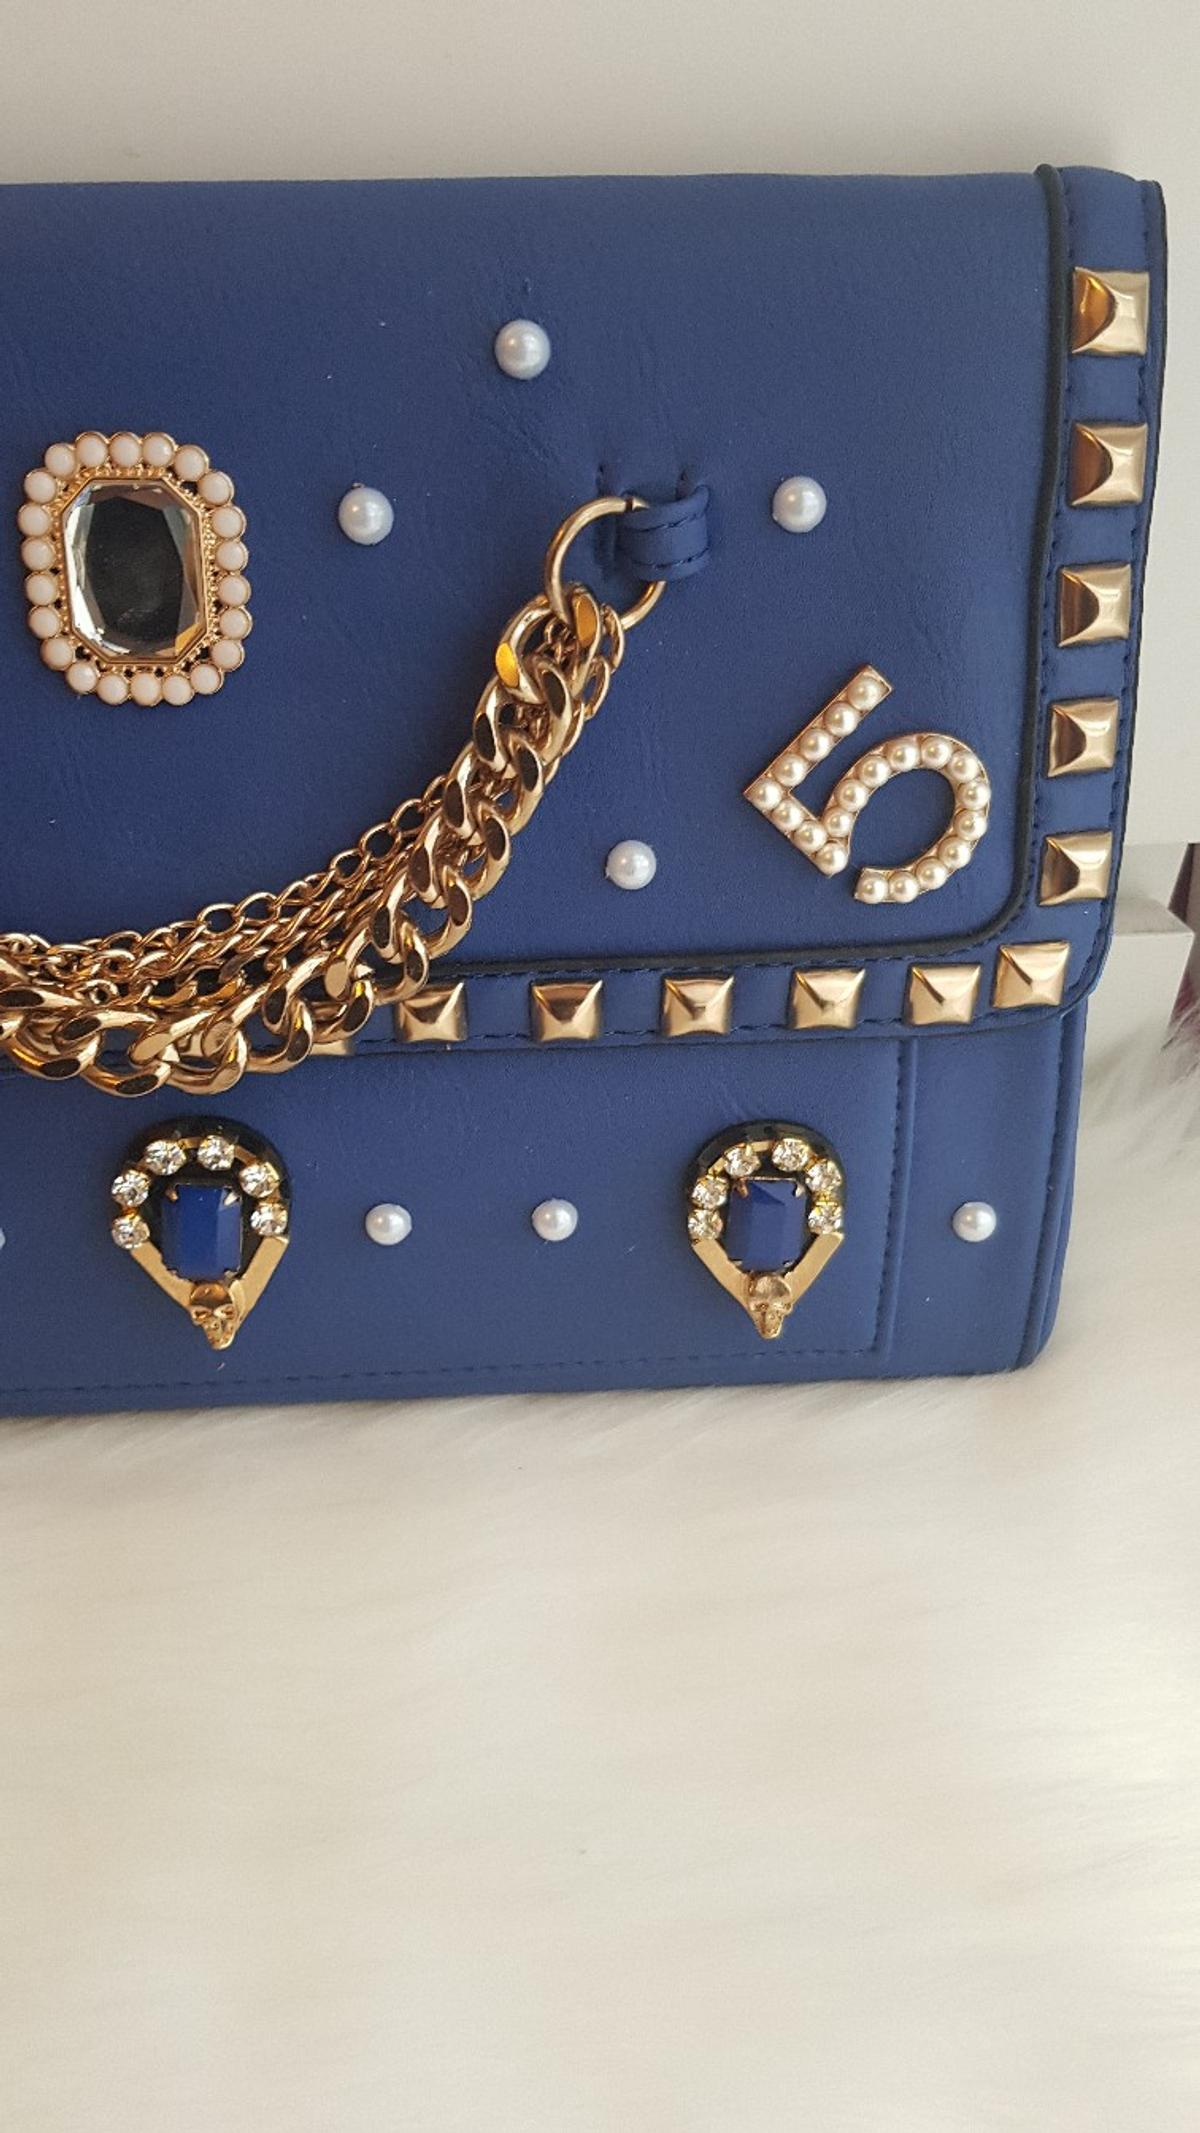 BRAND NEW CUSTOMISED BLUE JEWELLED CLUTCH BAG in N22 London